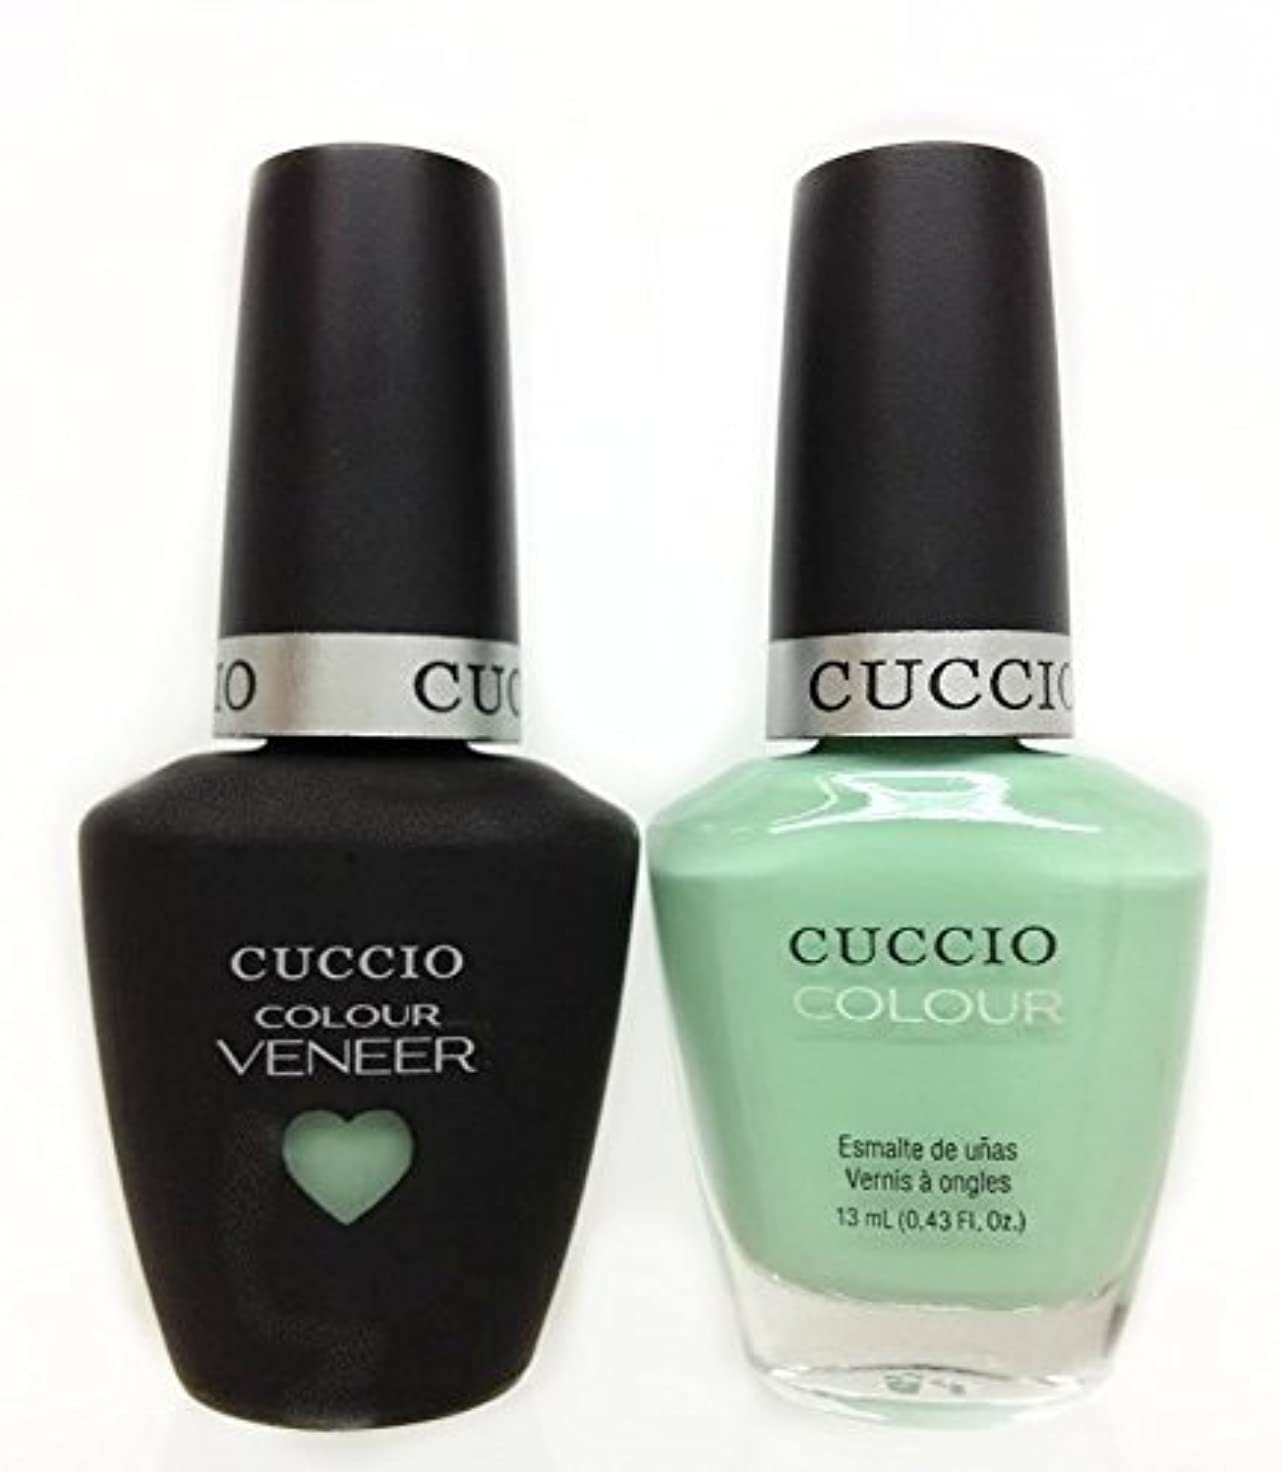 価値ダウン暖かさCuccio MatchMakers Veneer & Lacquer - Mint Condition - 0.43oz / 13ml Each